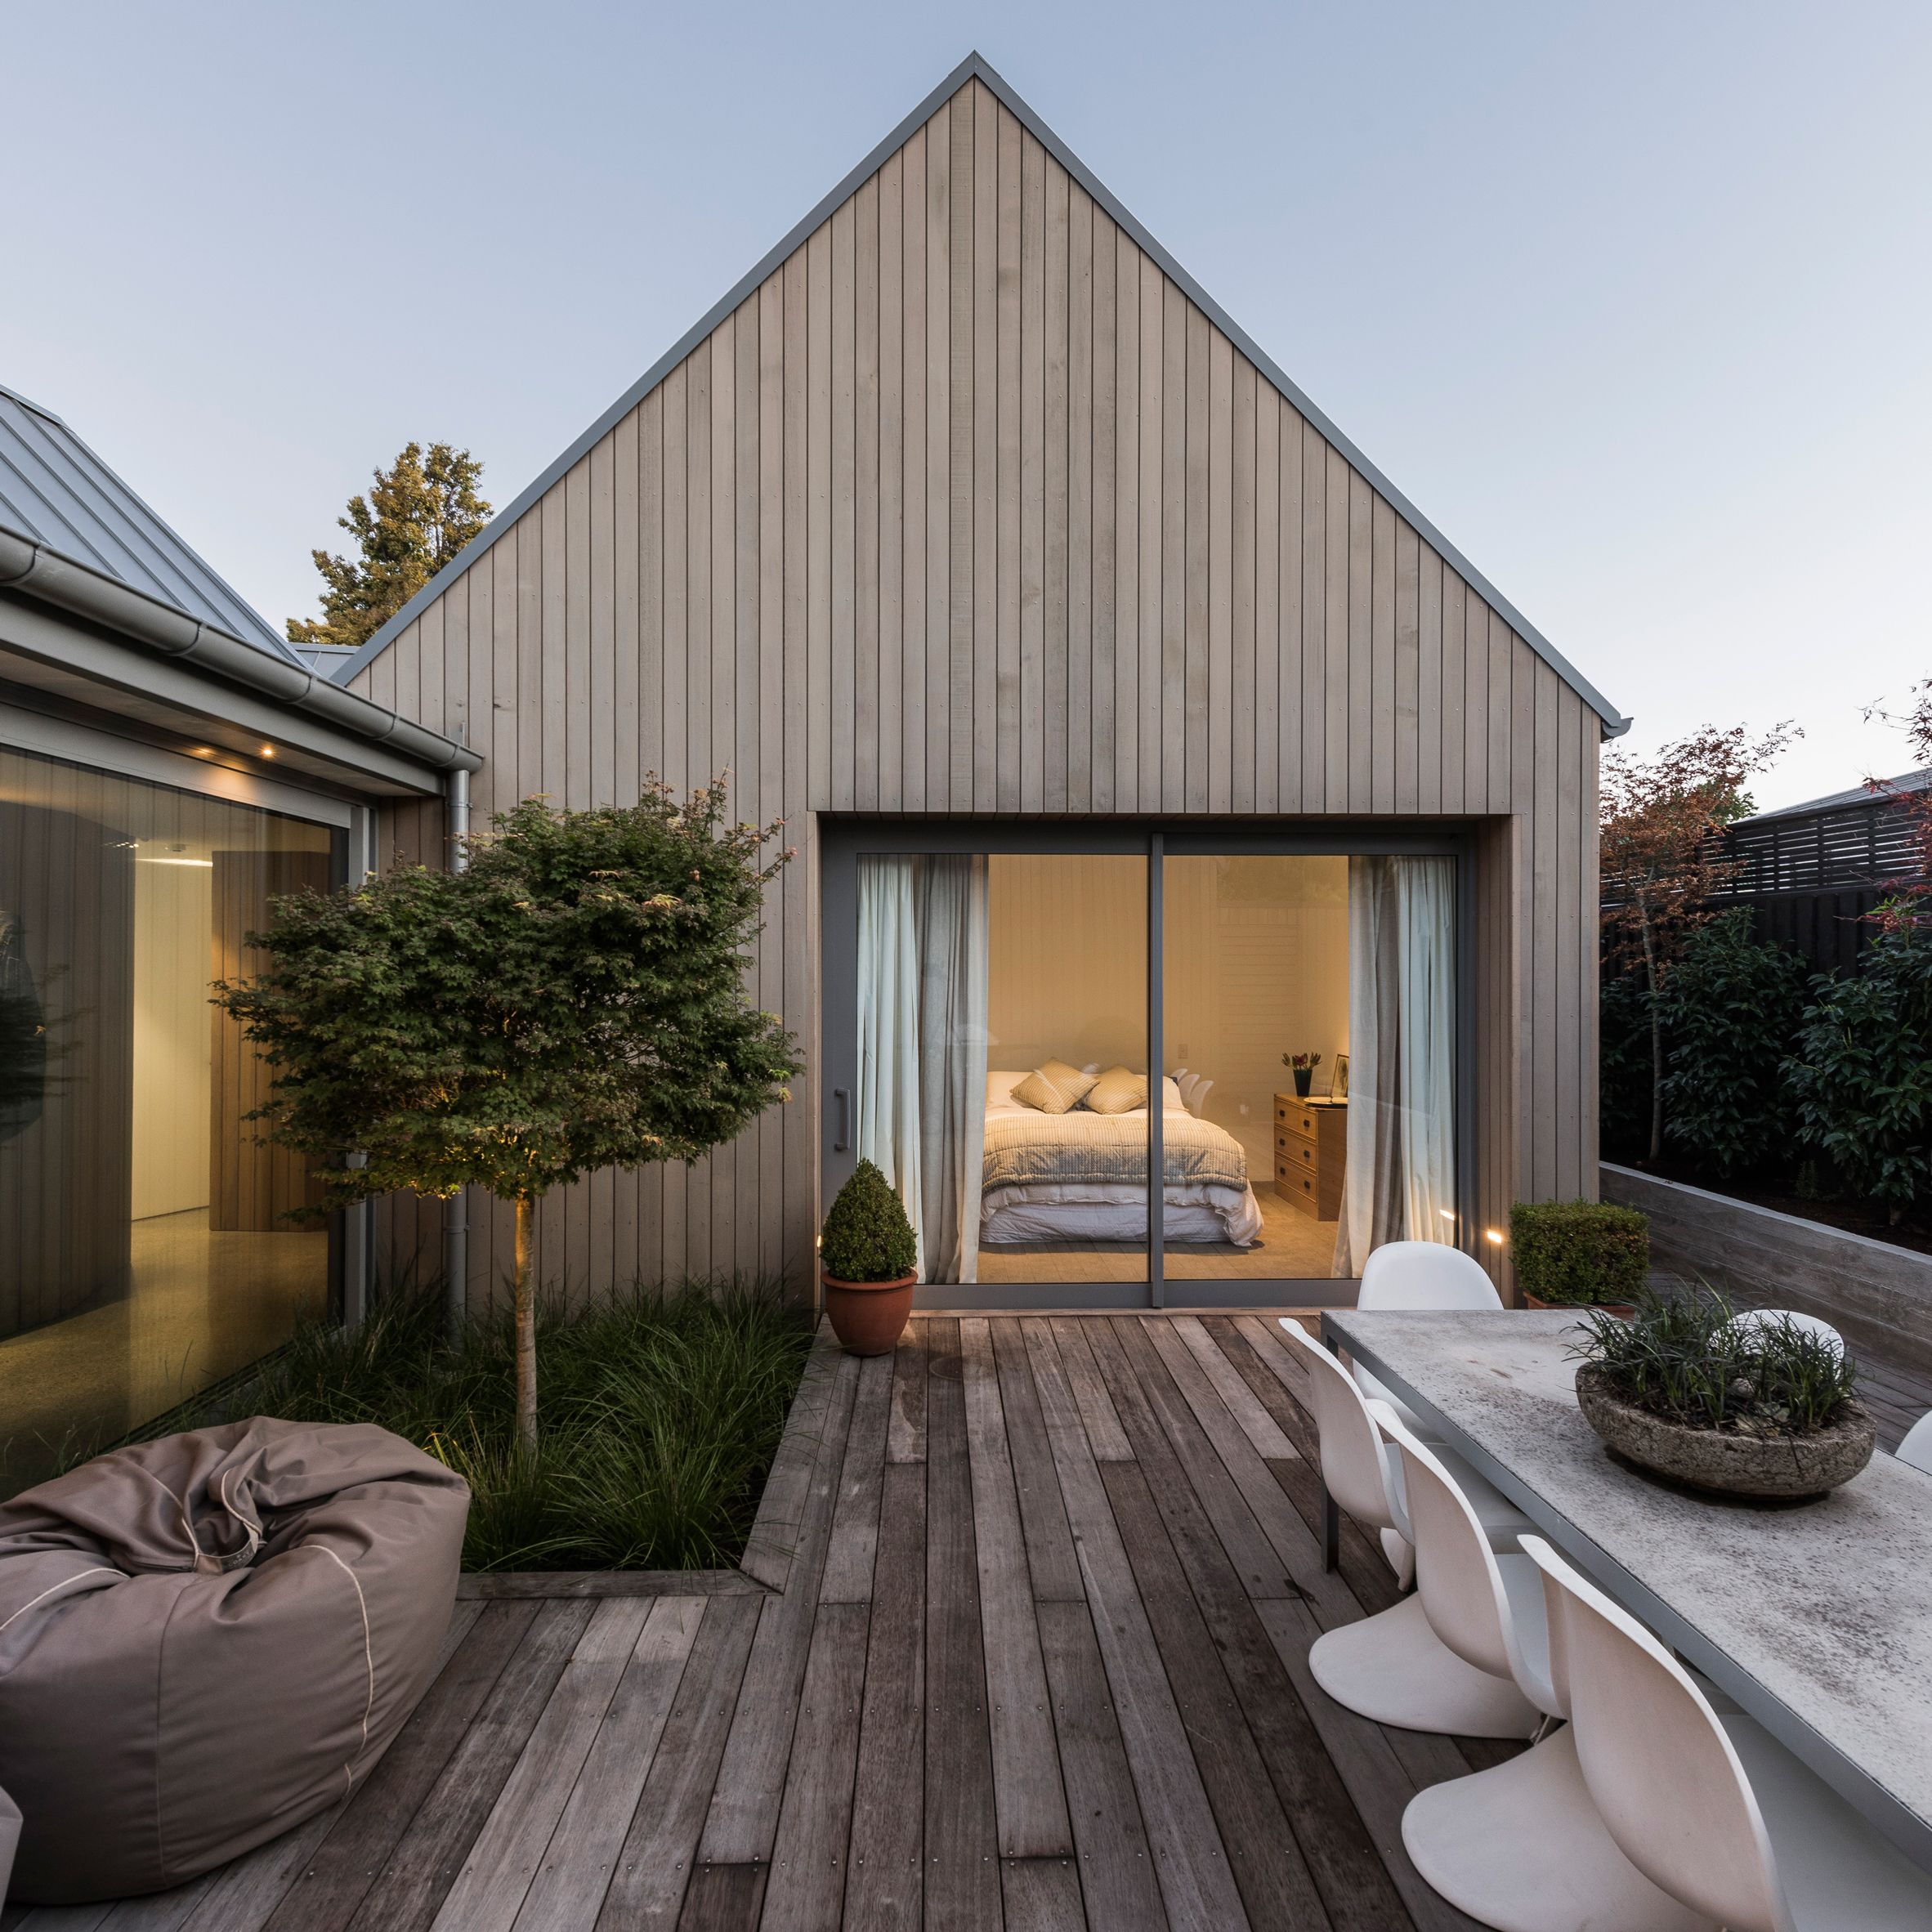 Case Ornsby Completes Cedar Clad House In Christchurch